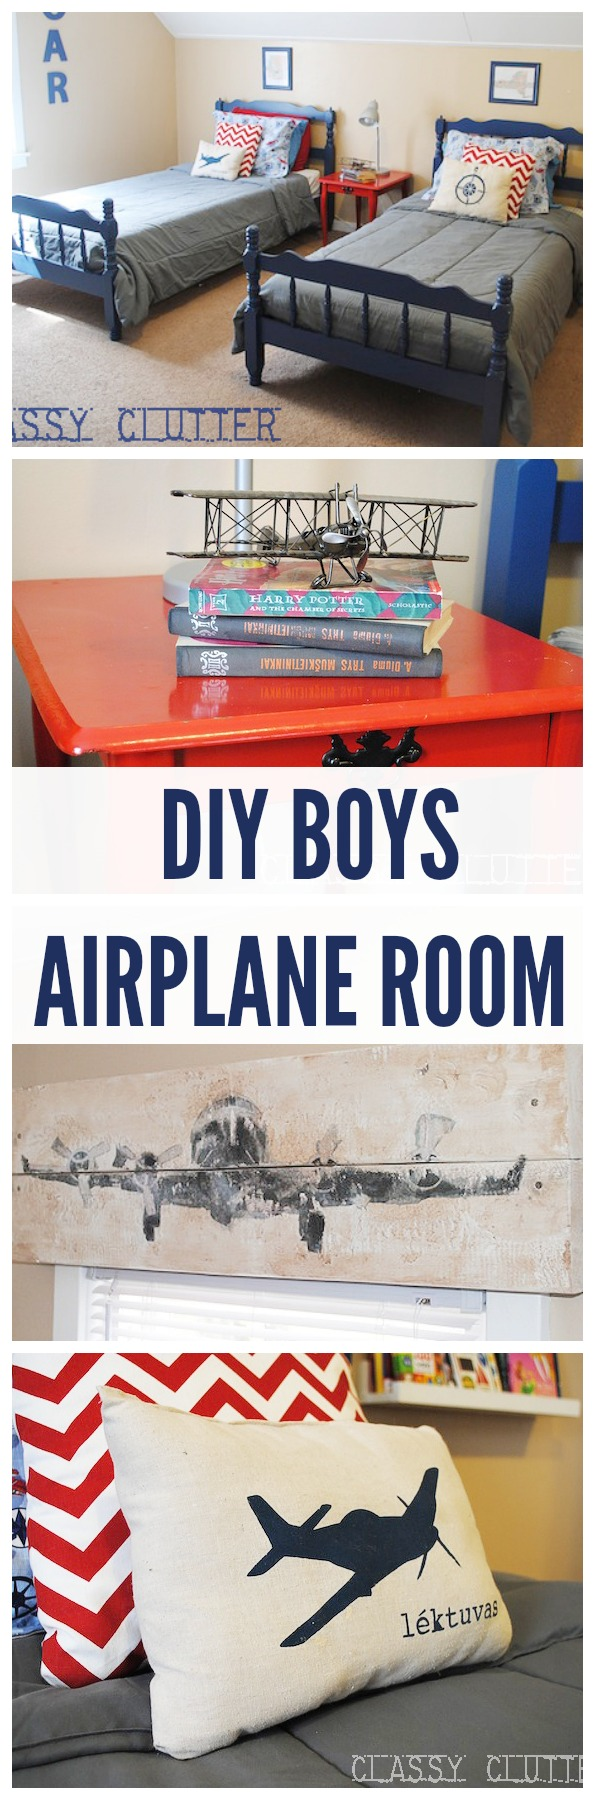 DIY Boys Airplane Room